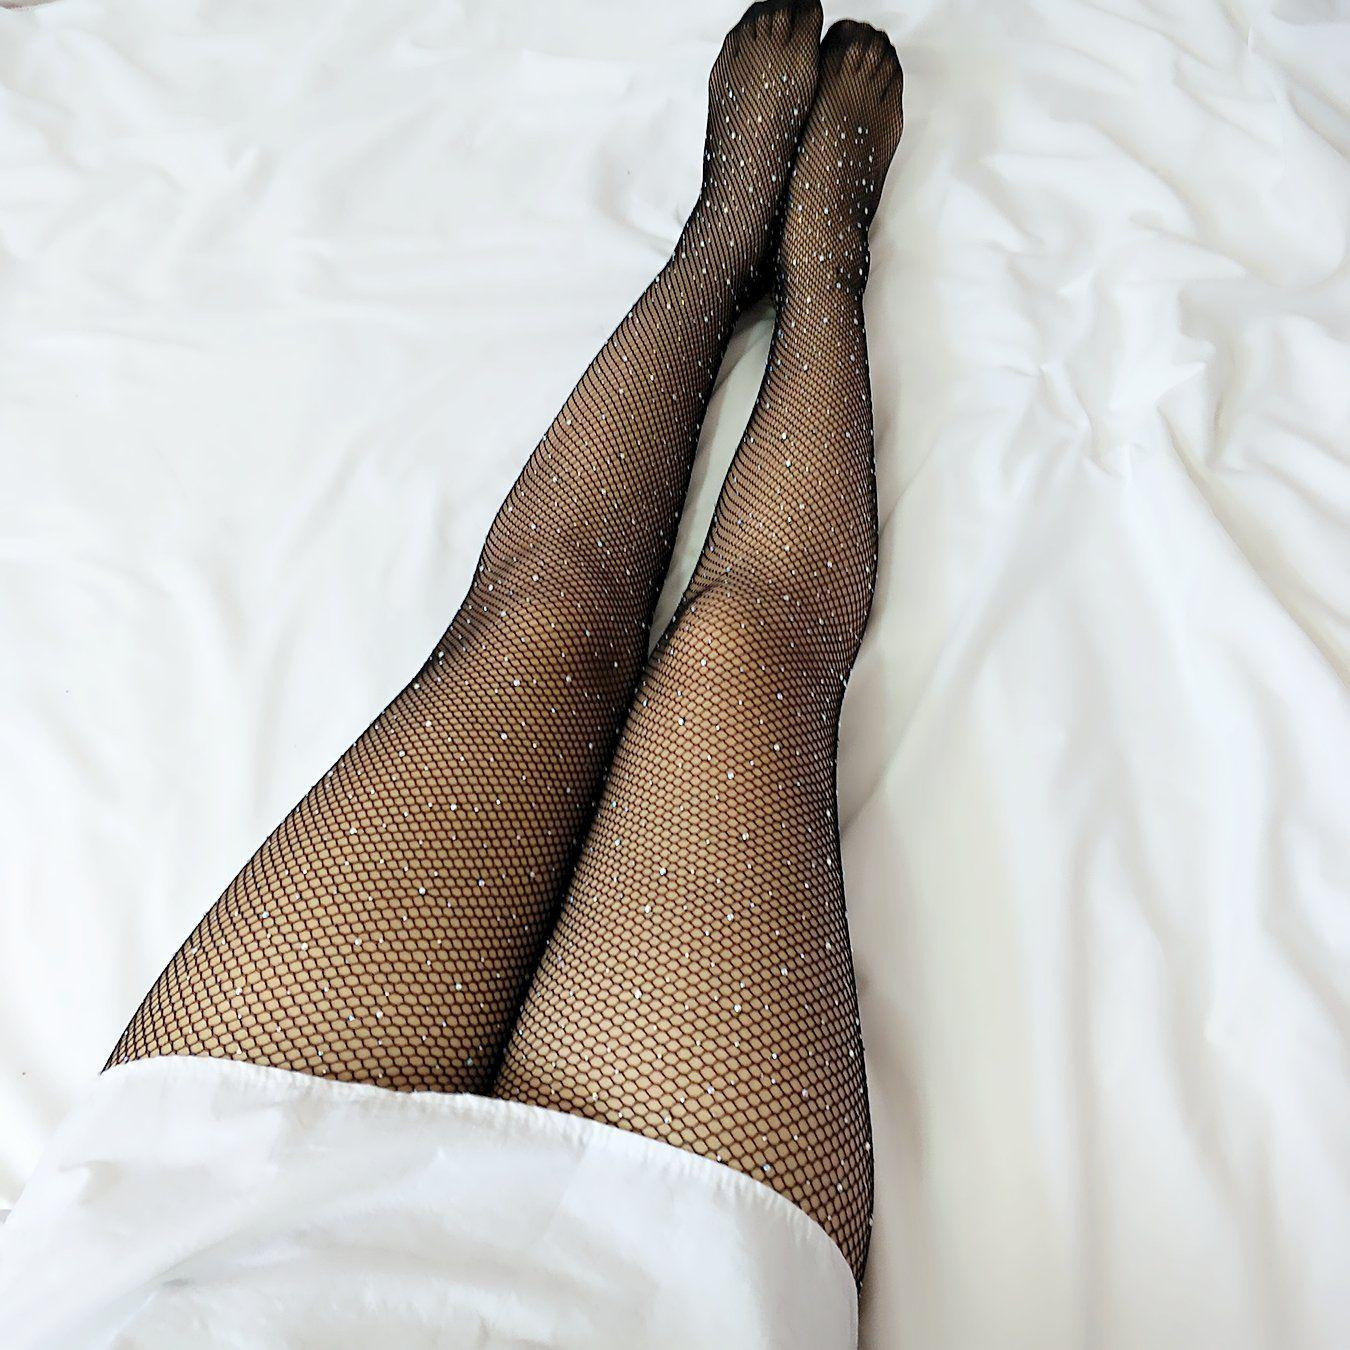 Stuck in pantyhose for 2 days have